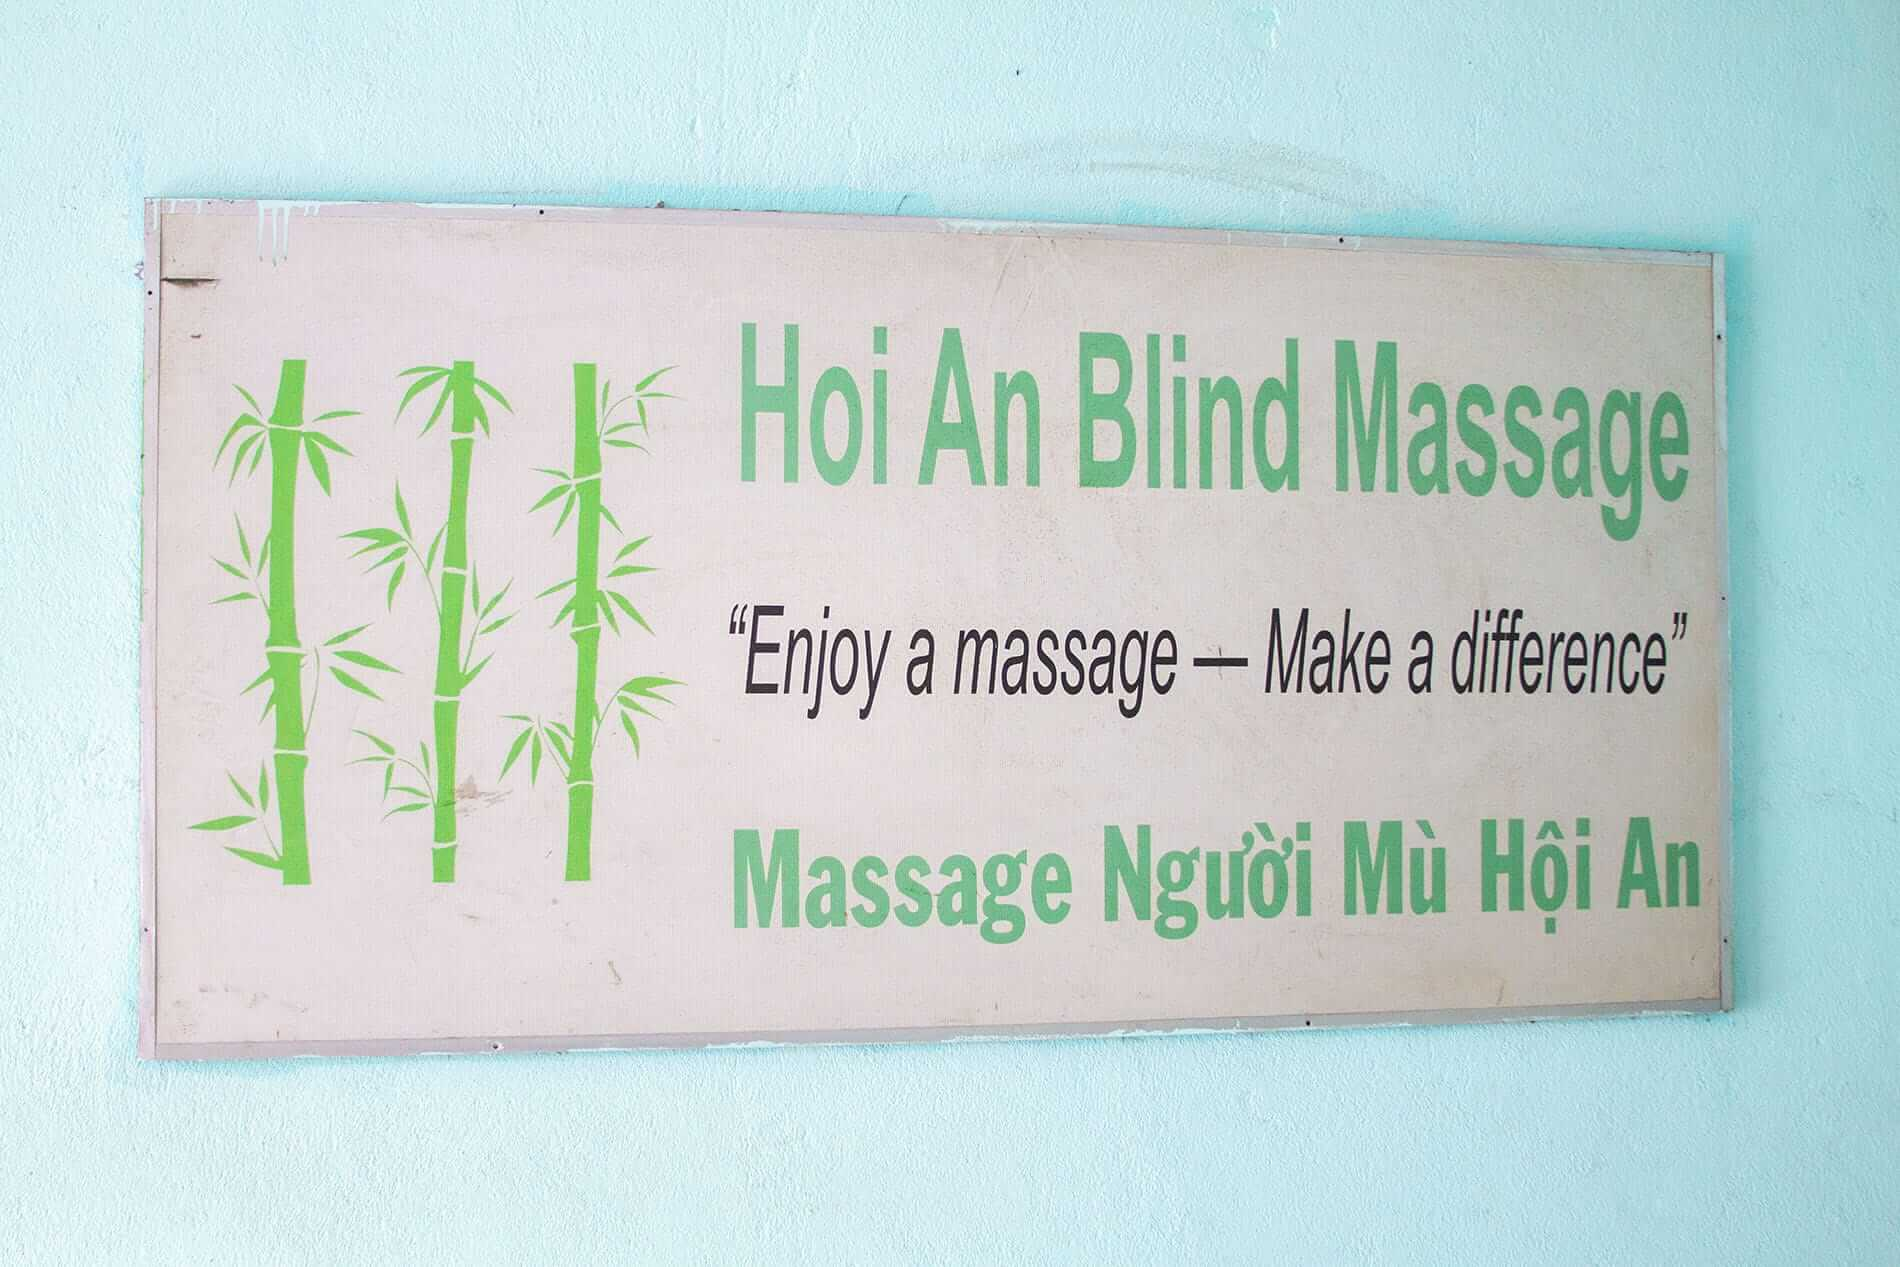 the sign at Hoi An Blind Massage